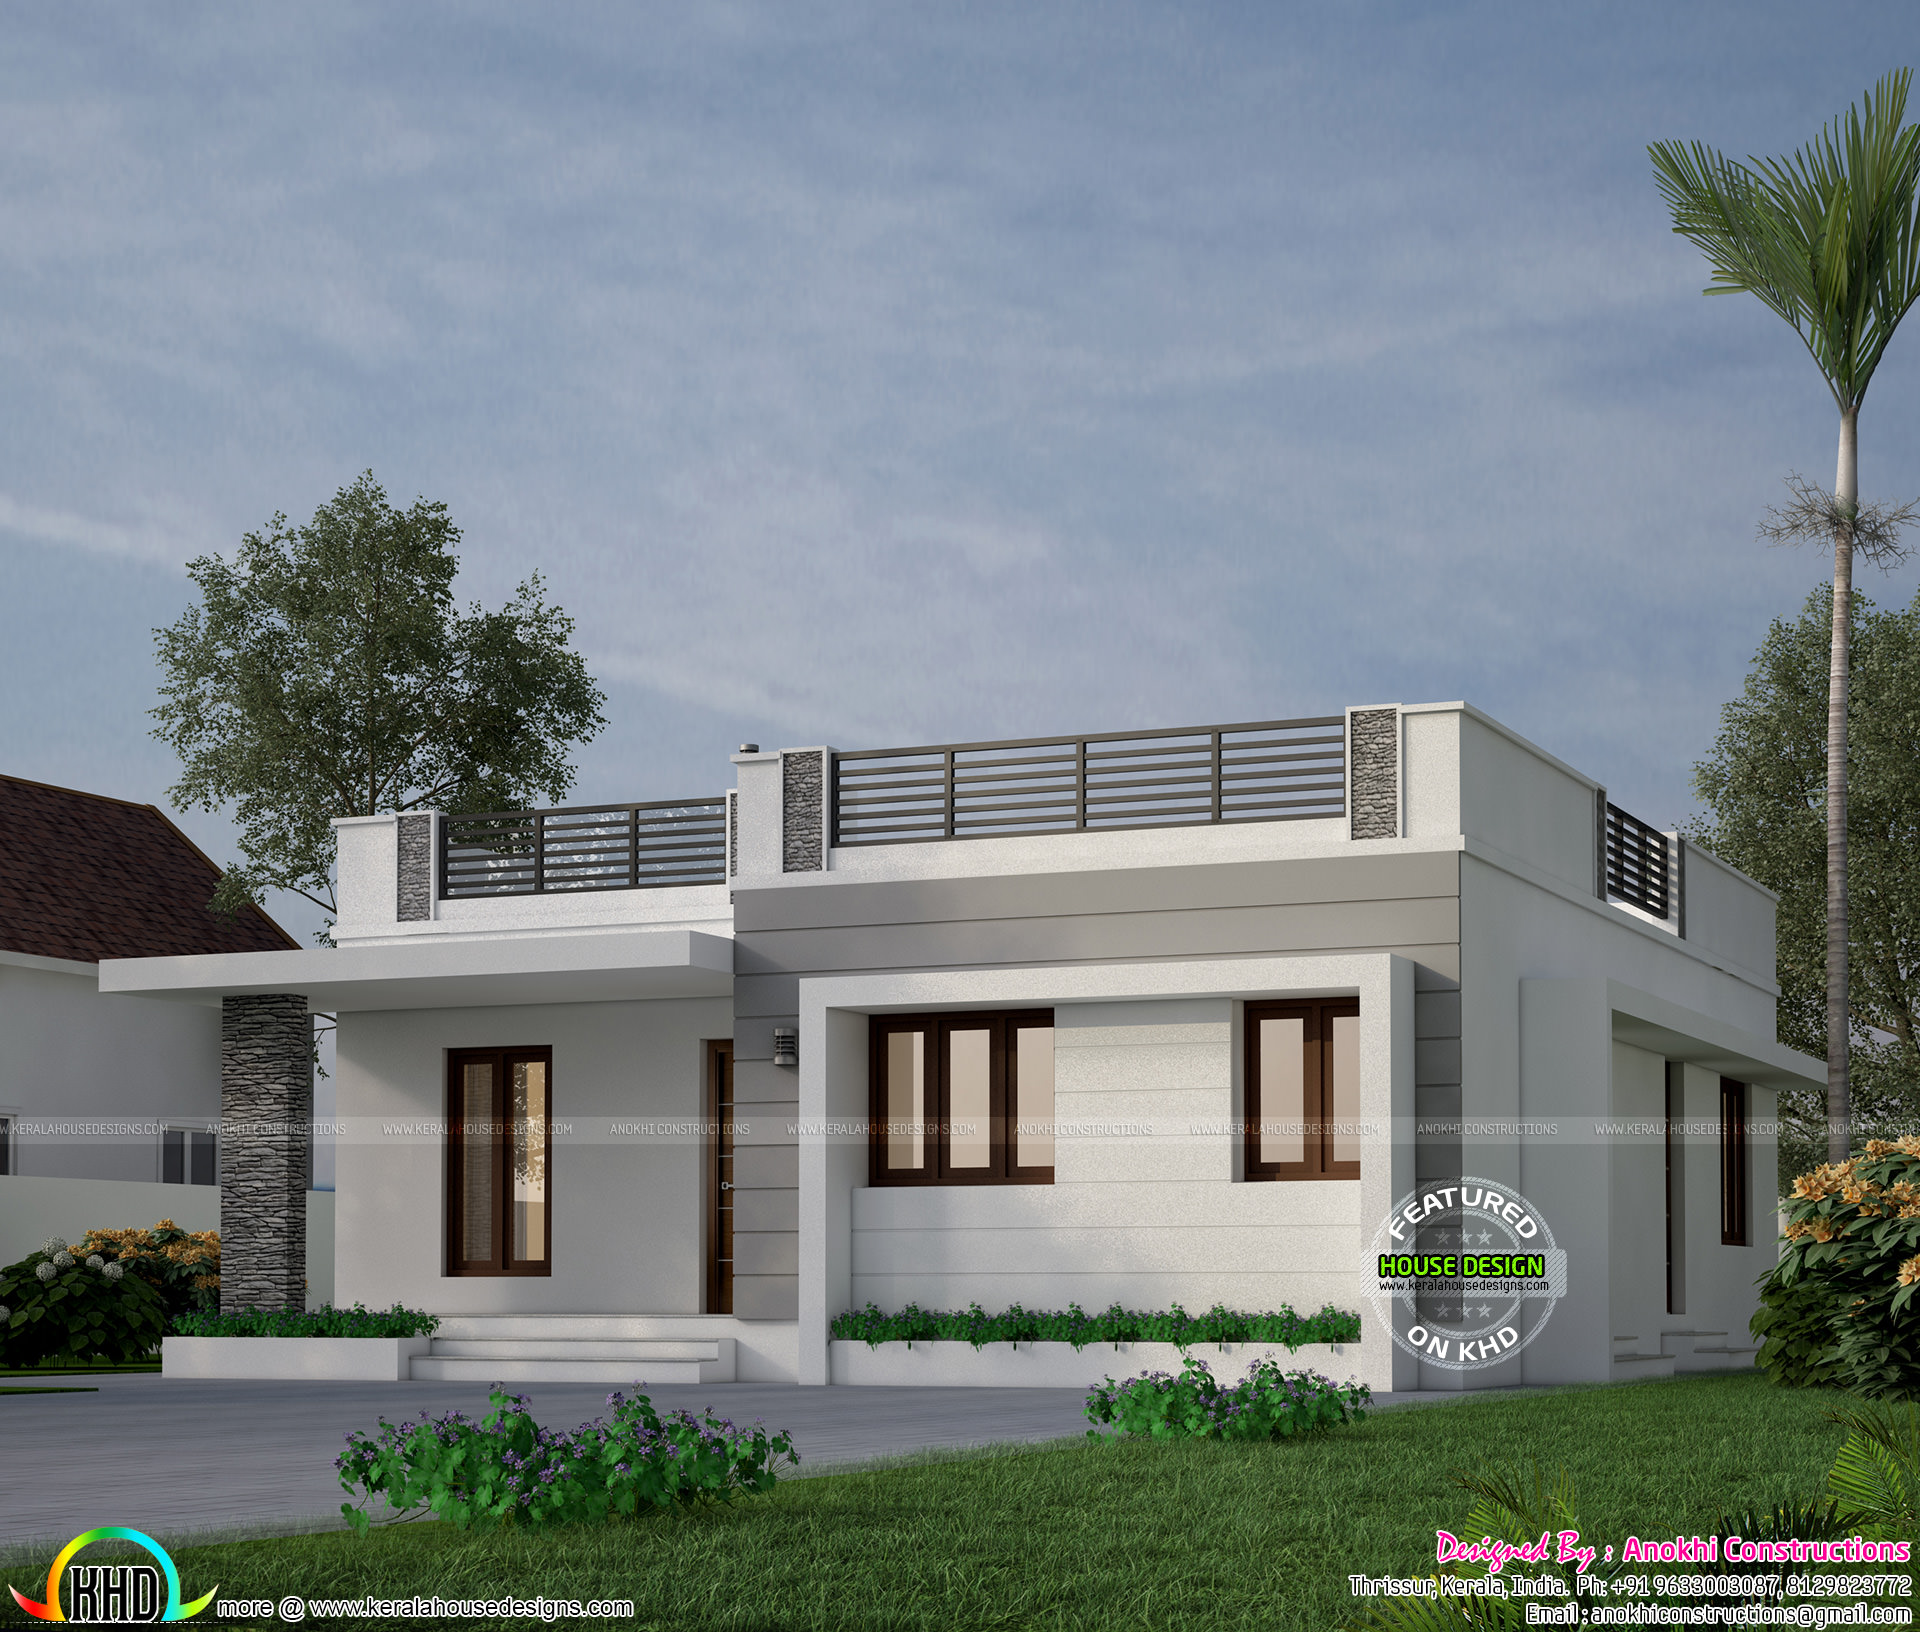 18 lakhs budget estimated house in kerala kerala home for House plans with estimated cost to build in kerala